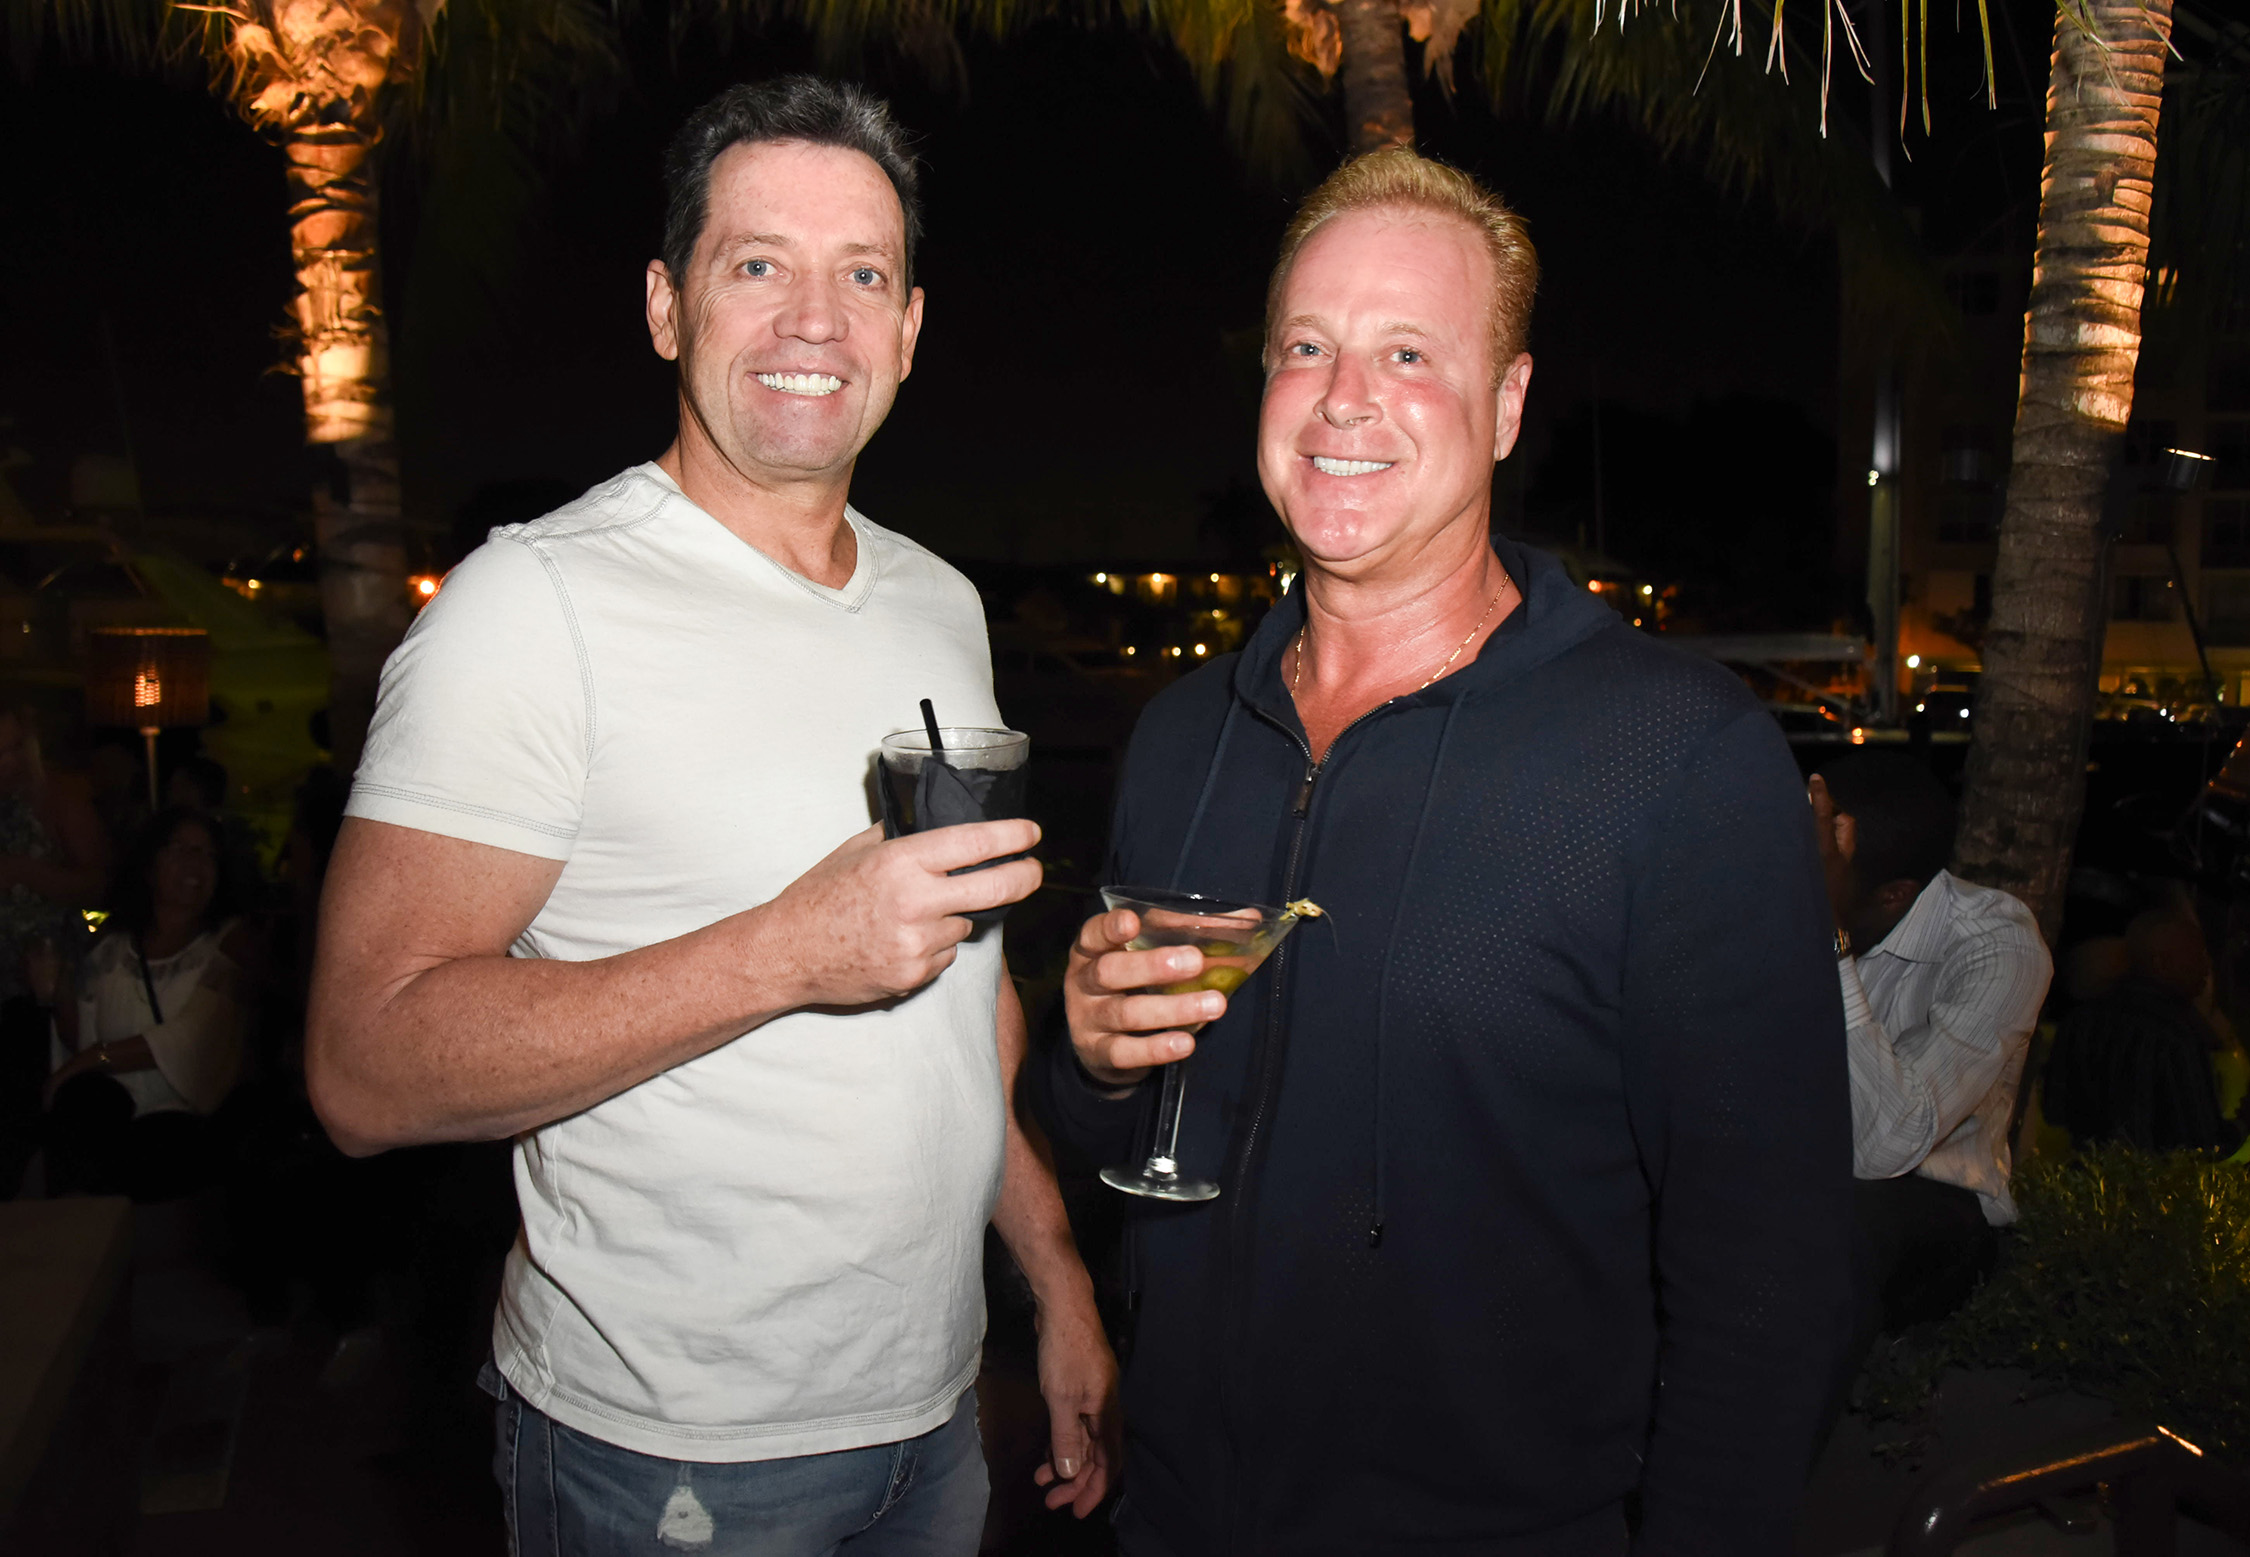 Terence-Walsh-and-John-D'Eri-Around-Town-The-Seen-Fort-Lauderdale-Venice-Magazine-Michele-Eve-Sandberg